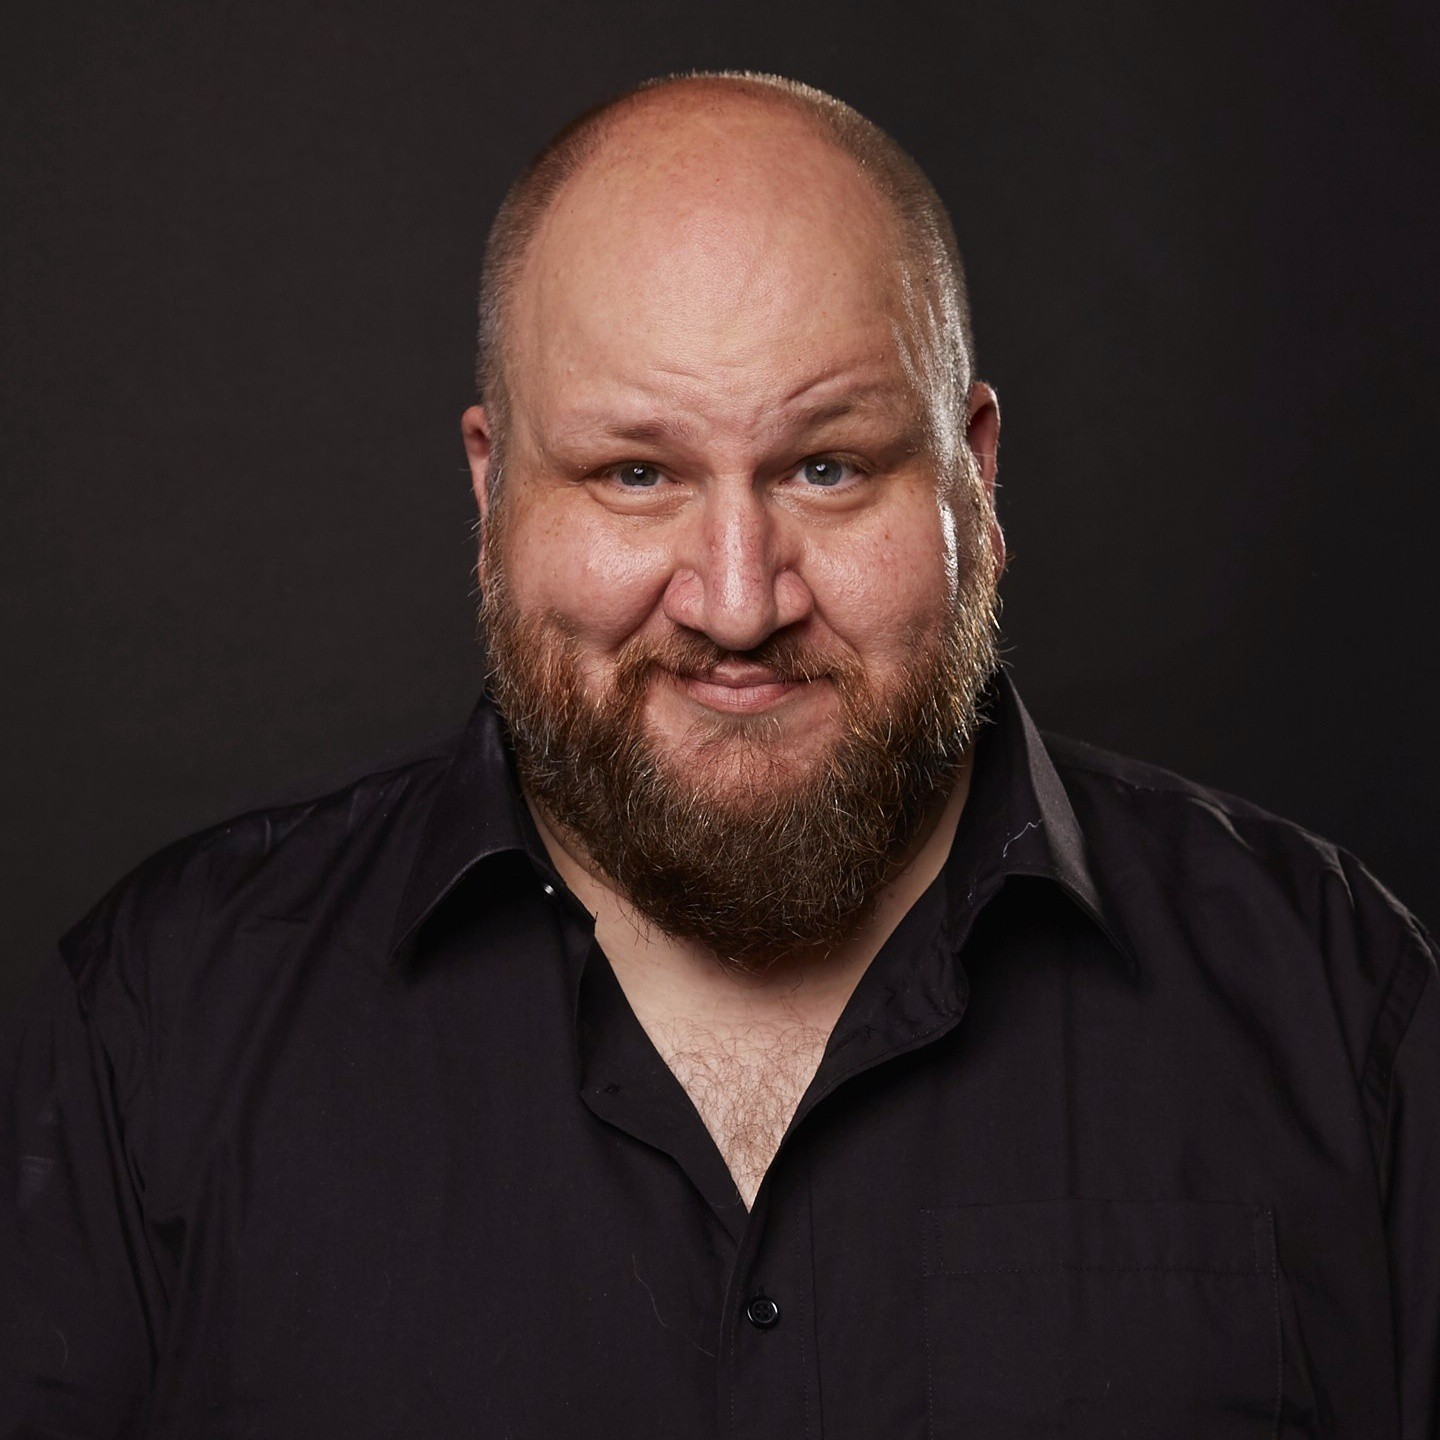 Stephen Kramer Glickman weight loss